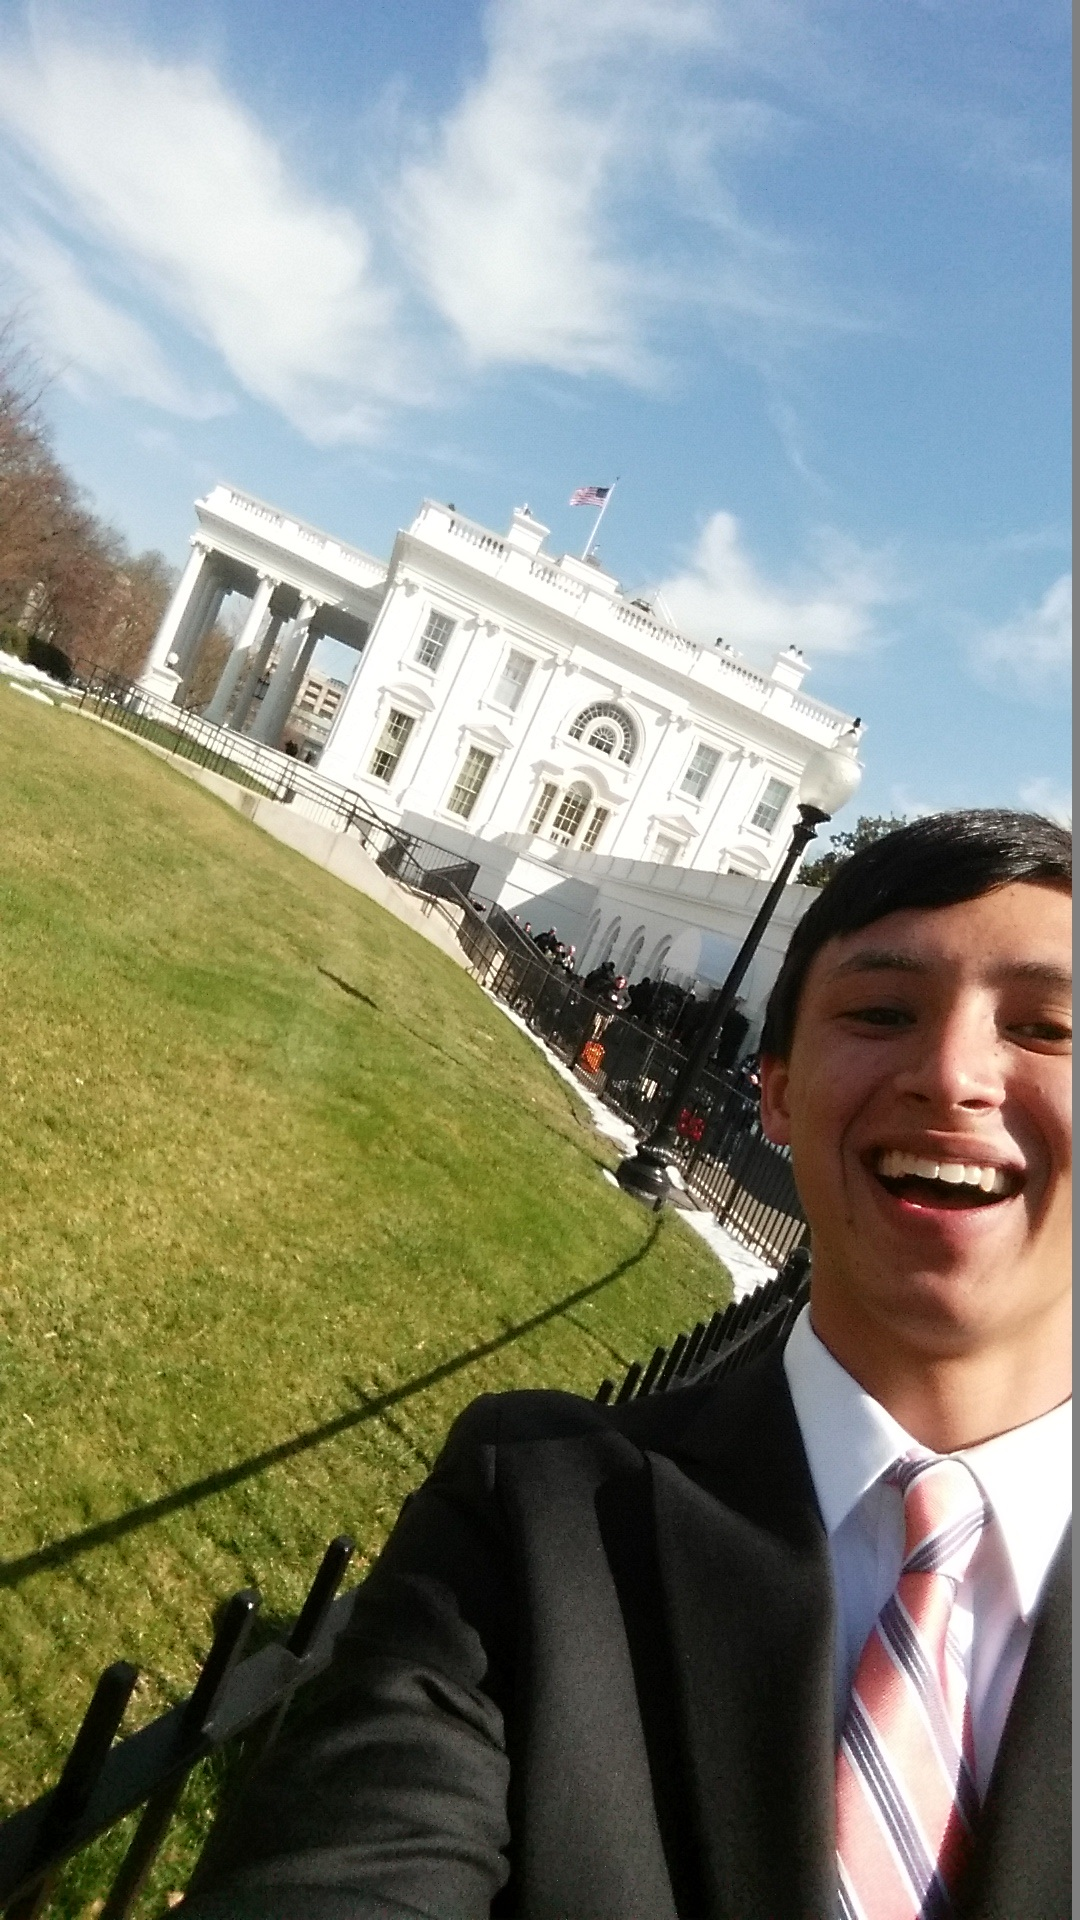 Chad Robinson in front of the White House